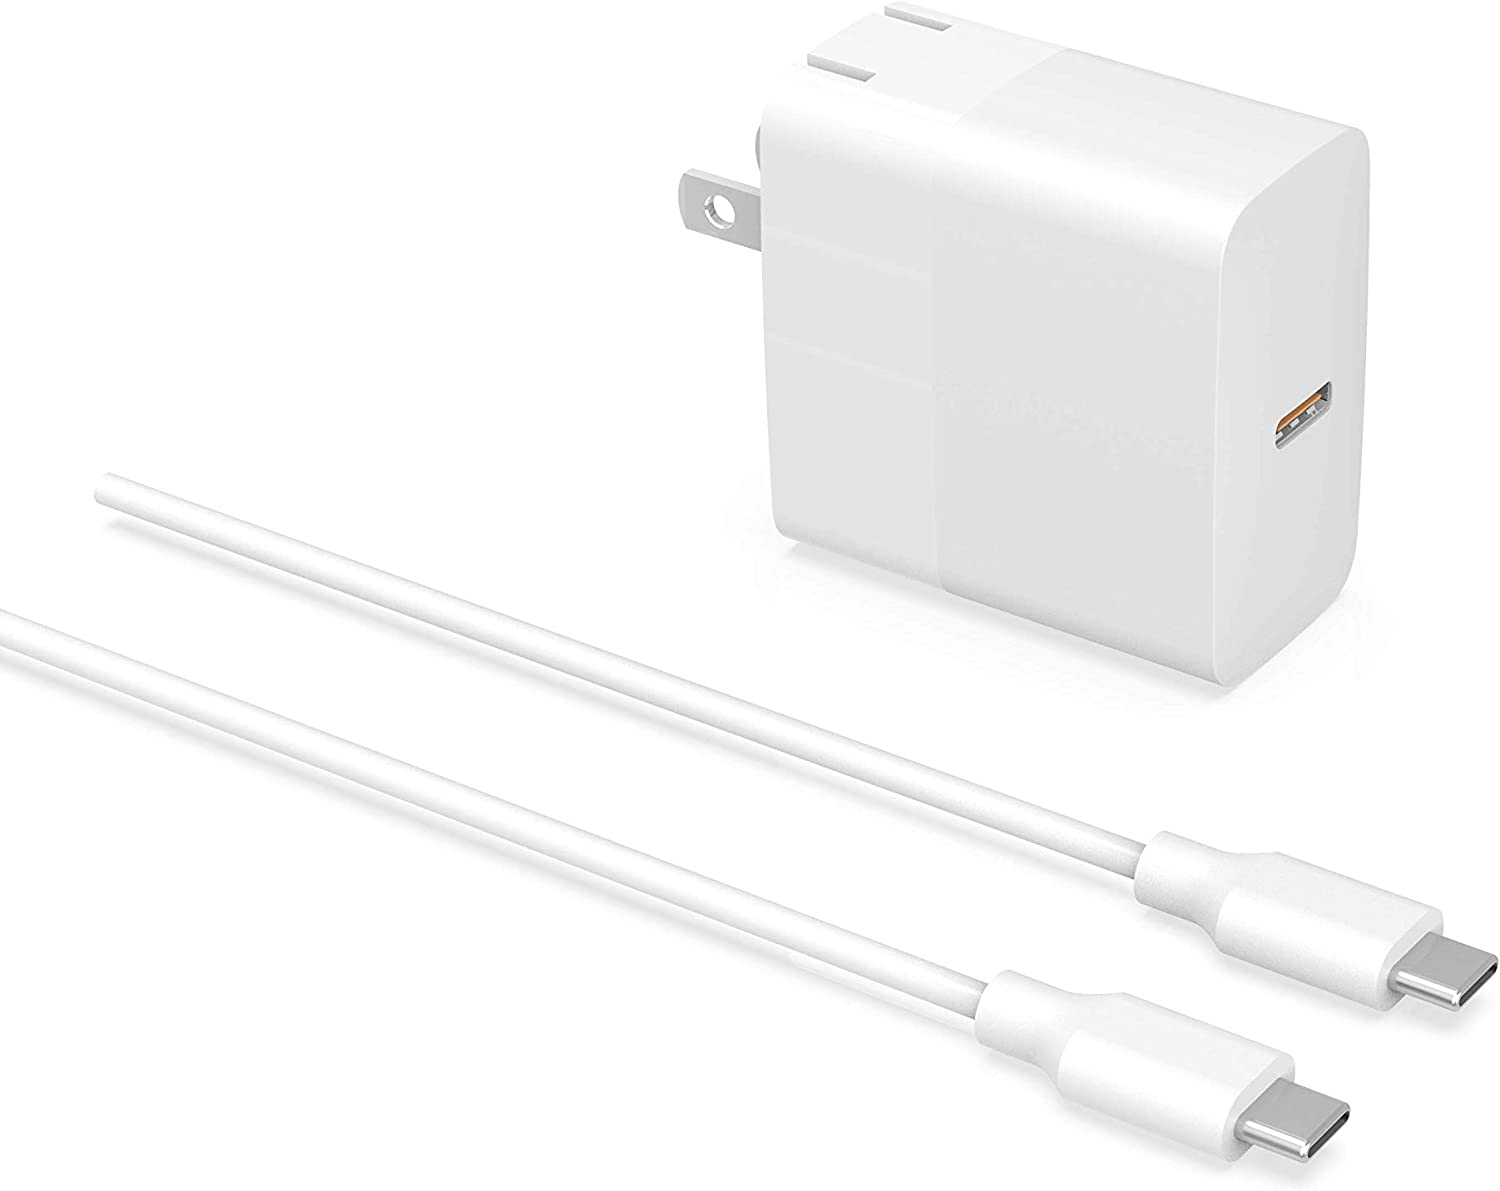 29W 30W AC Charger Fit for MacBook Air 2020 2018 13-inch Retina M1 Chip,iPad Air (4th Generation) Power Supply Cord